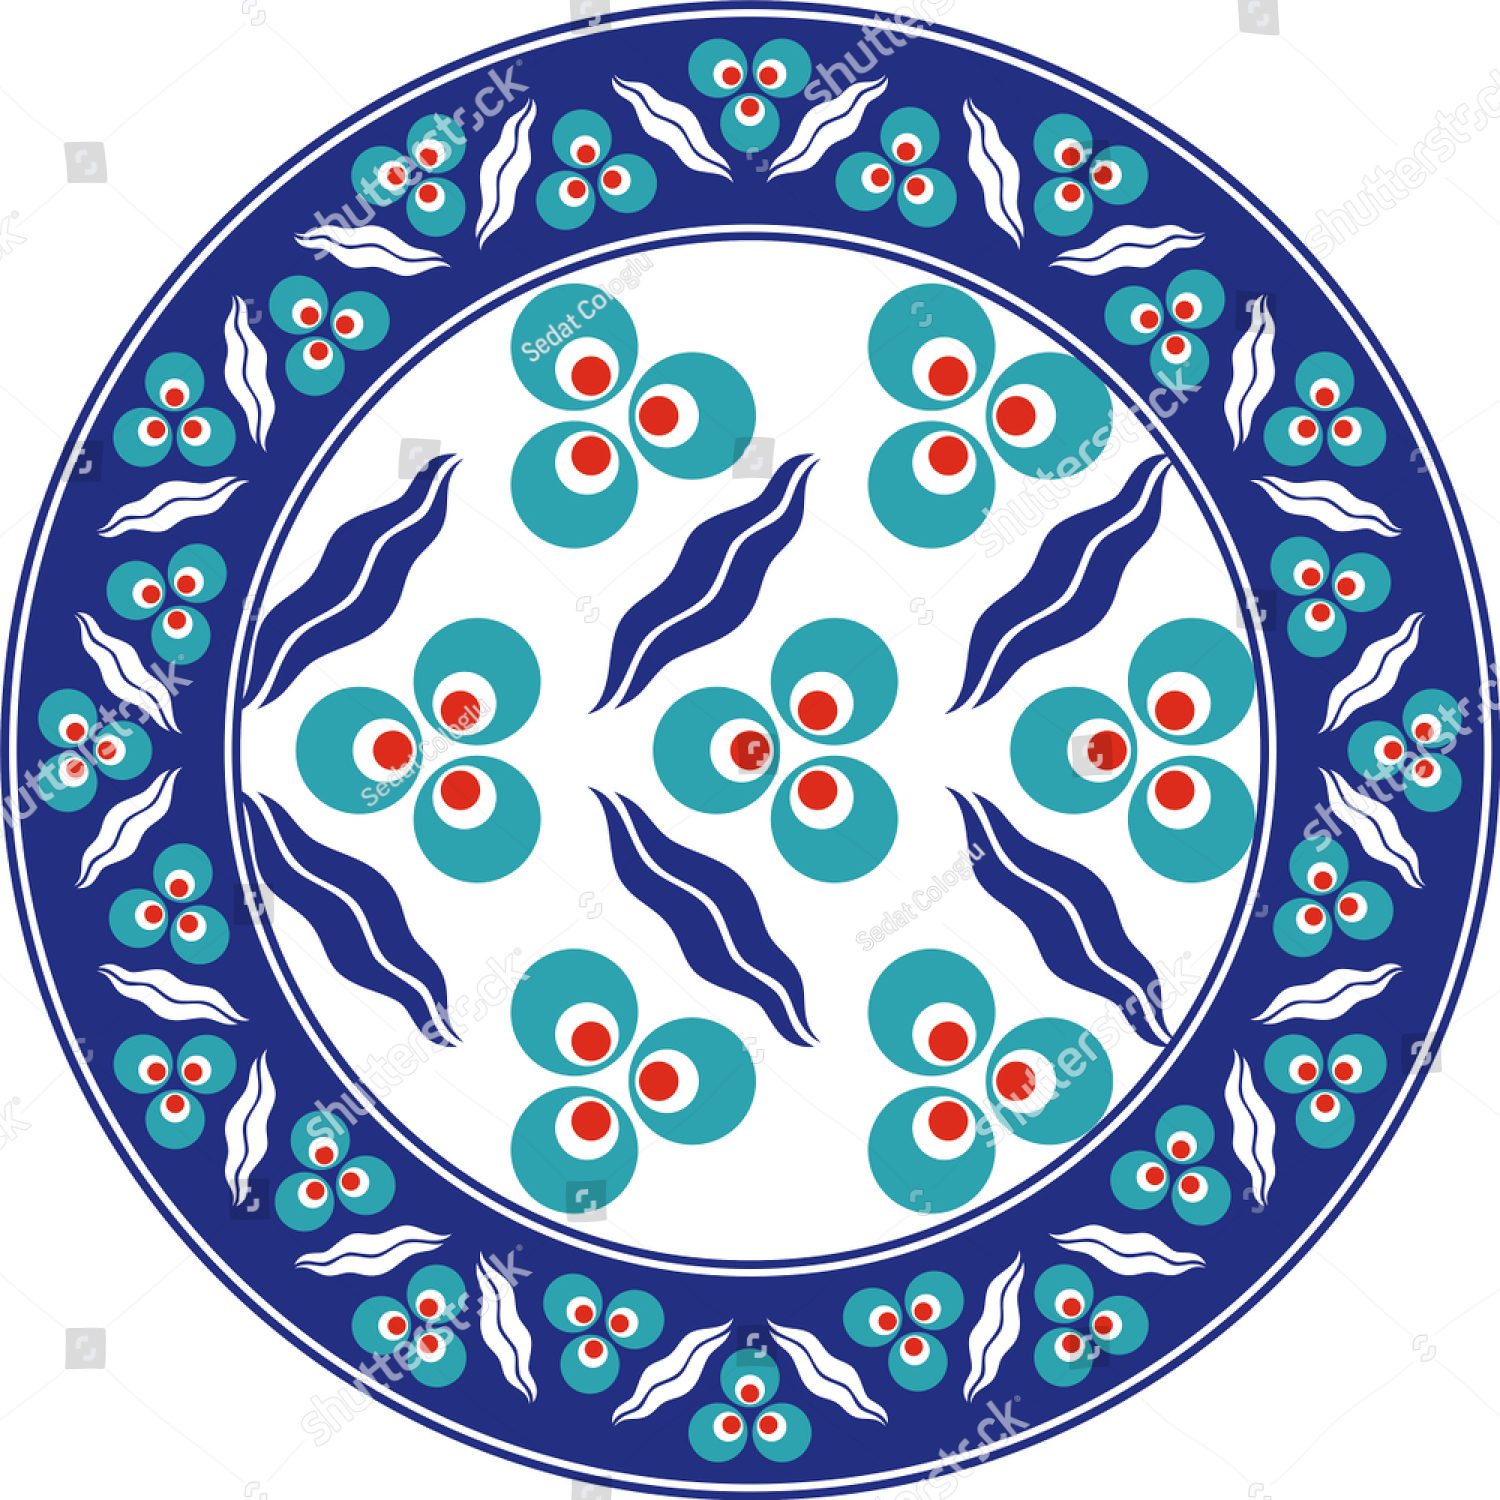 stock-vector-vector-drawing-for-ceramic-plate-it-is-mostly-prepared-with-blue-red-and-white-colors-ottoman-1249982677